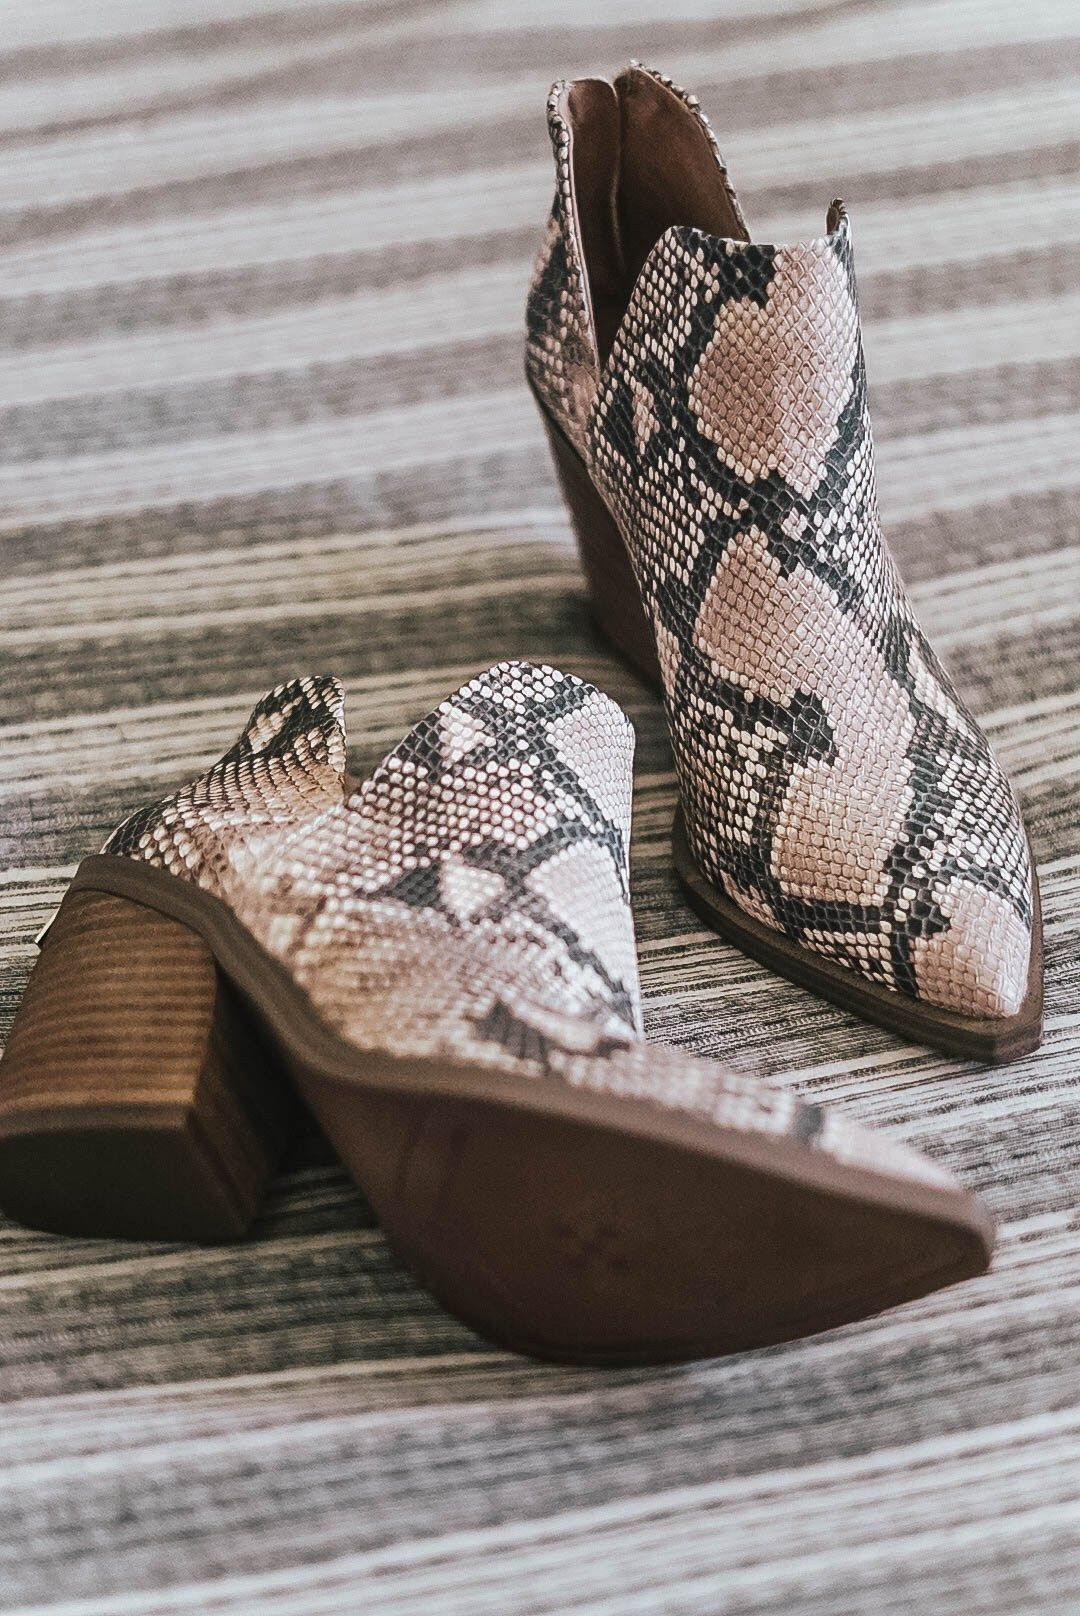 6 Shoes to Transition into Fall #fallshoes